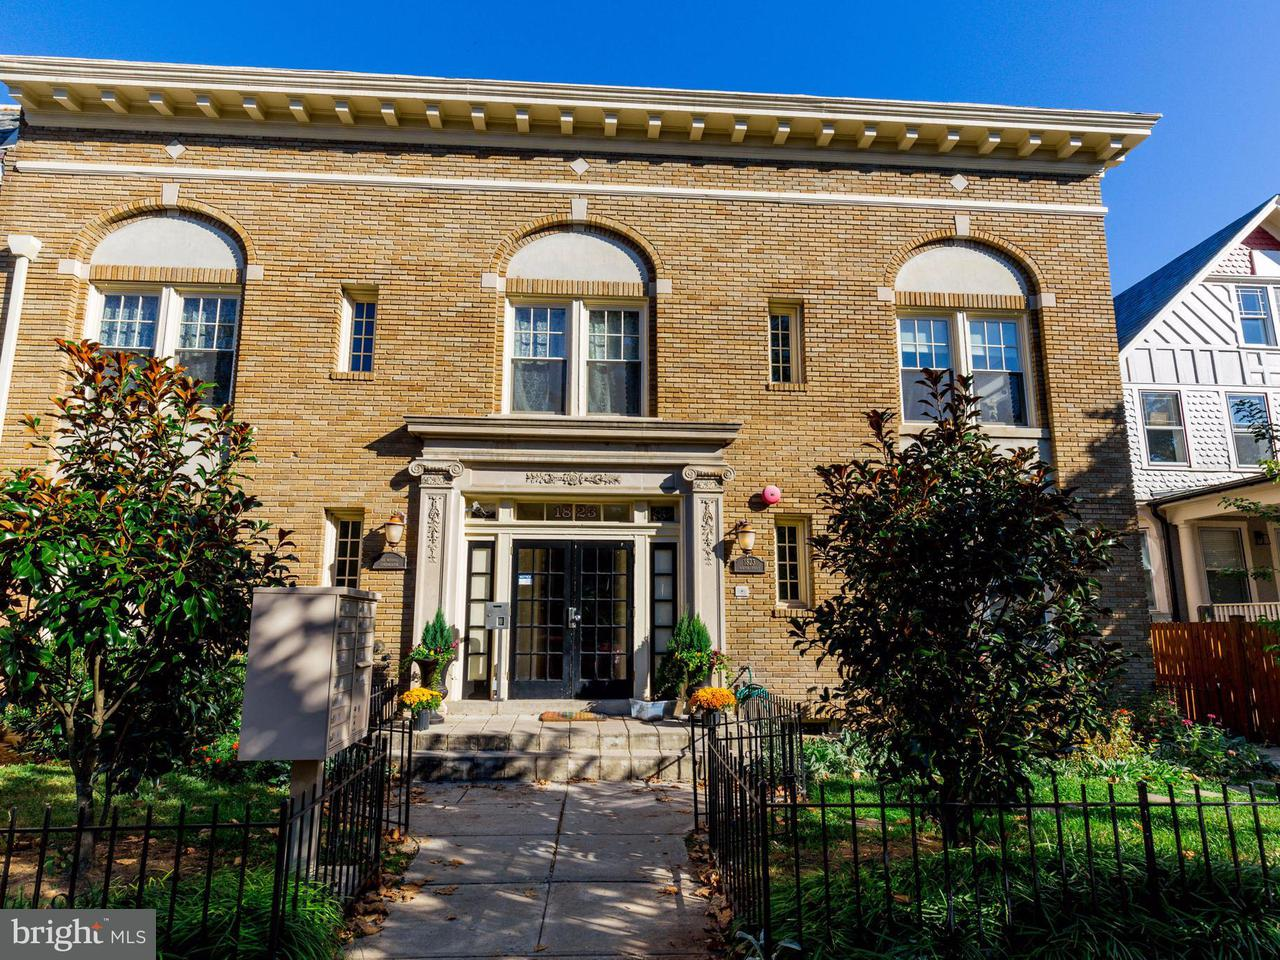 Townhouse for Sale at 1823 NEWTON ST NW #105 1823 NEWTON ST NW #105 Washington, District Of Columbia 20010 United States